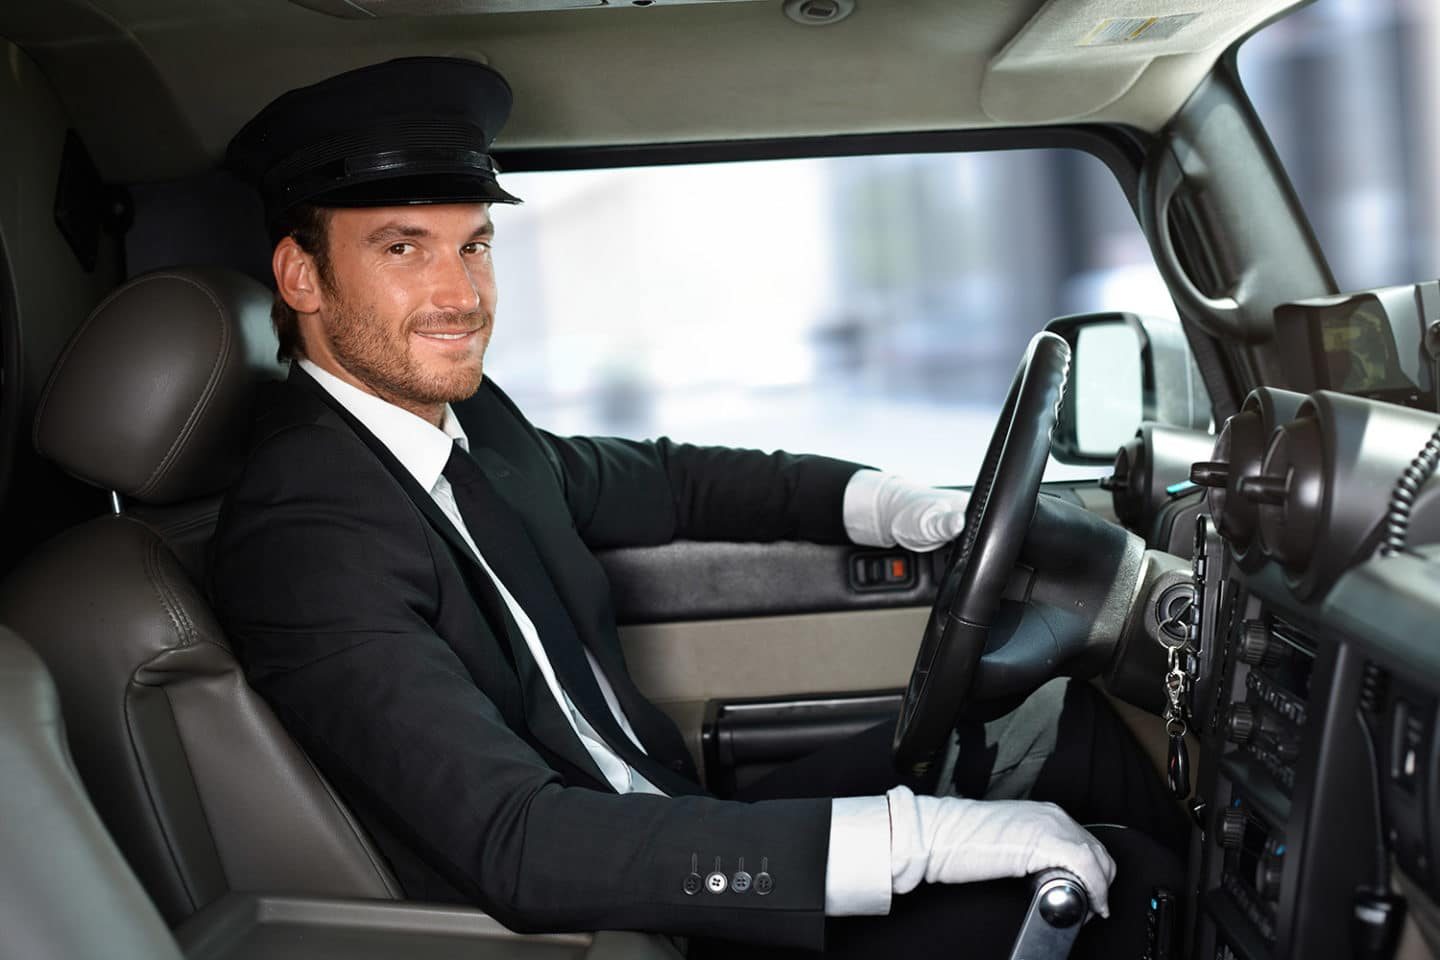 The Professional Characteristics of a Chauffeur